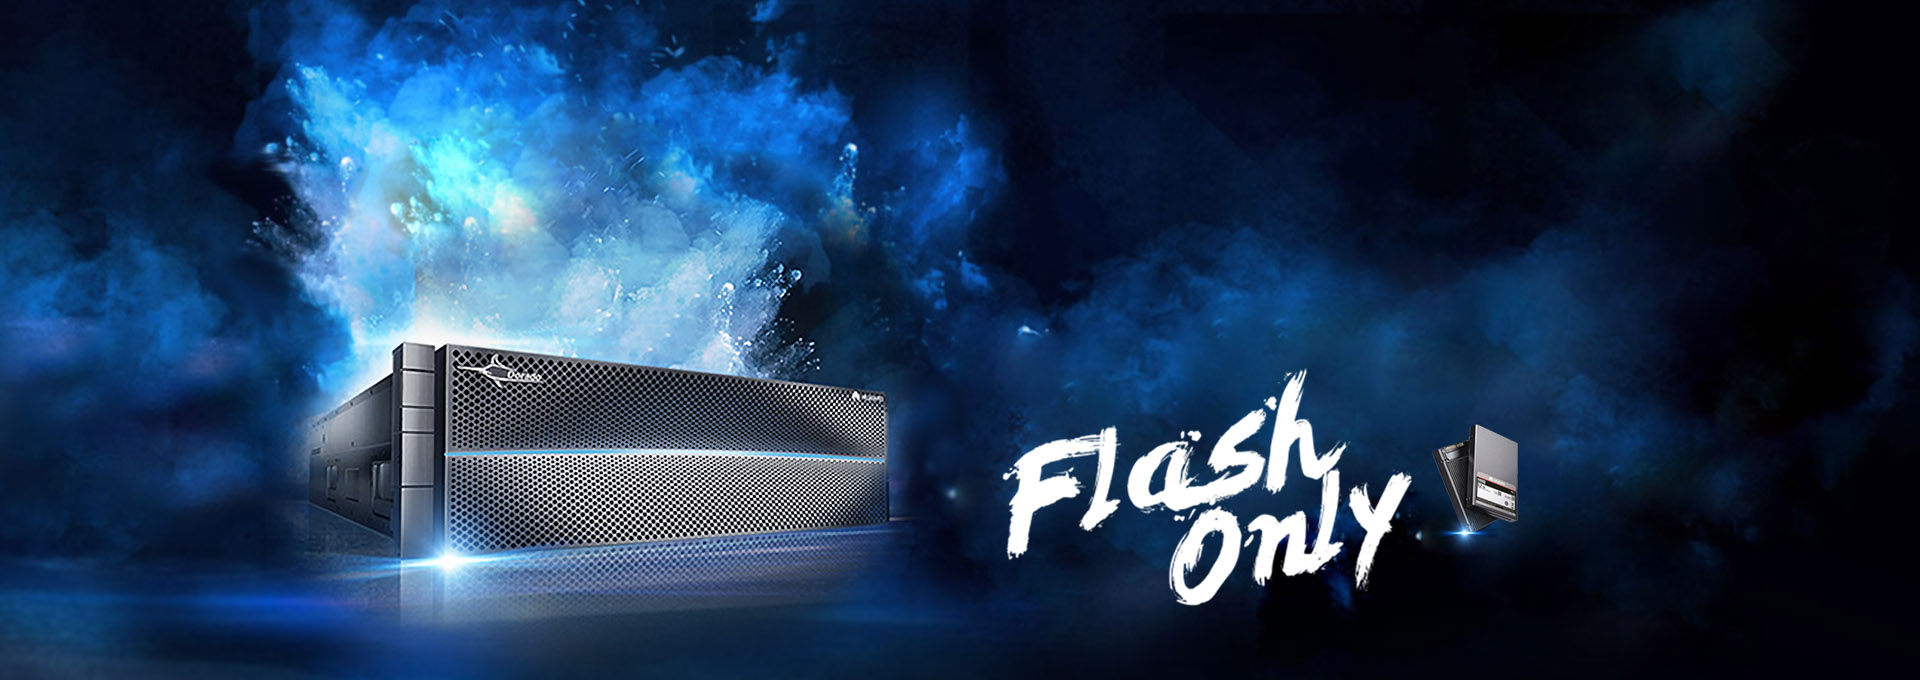 Flash Only LP 1920X450 6